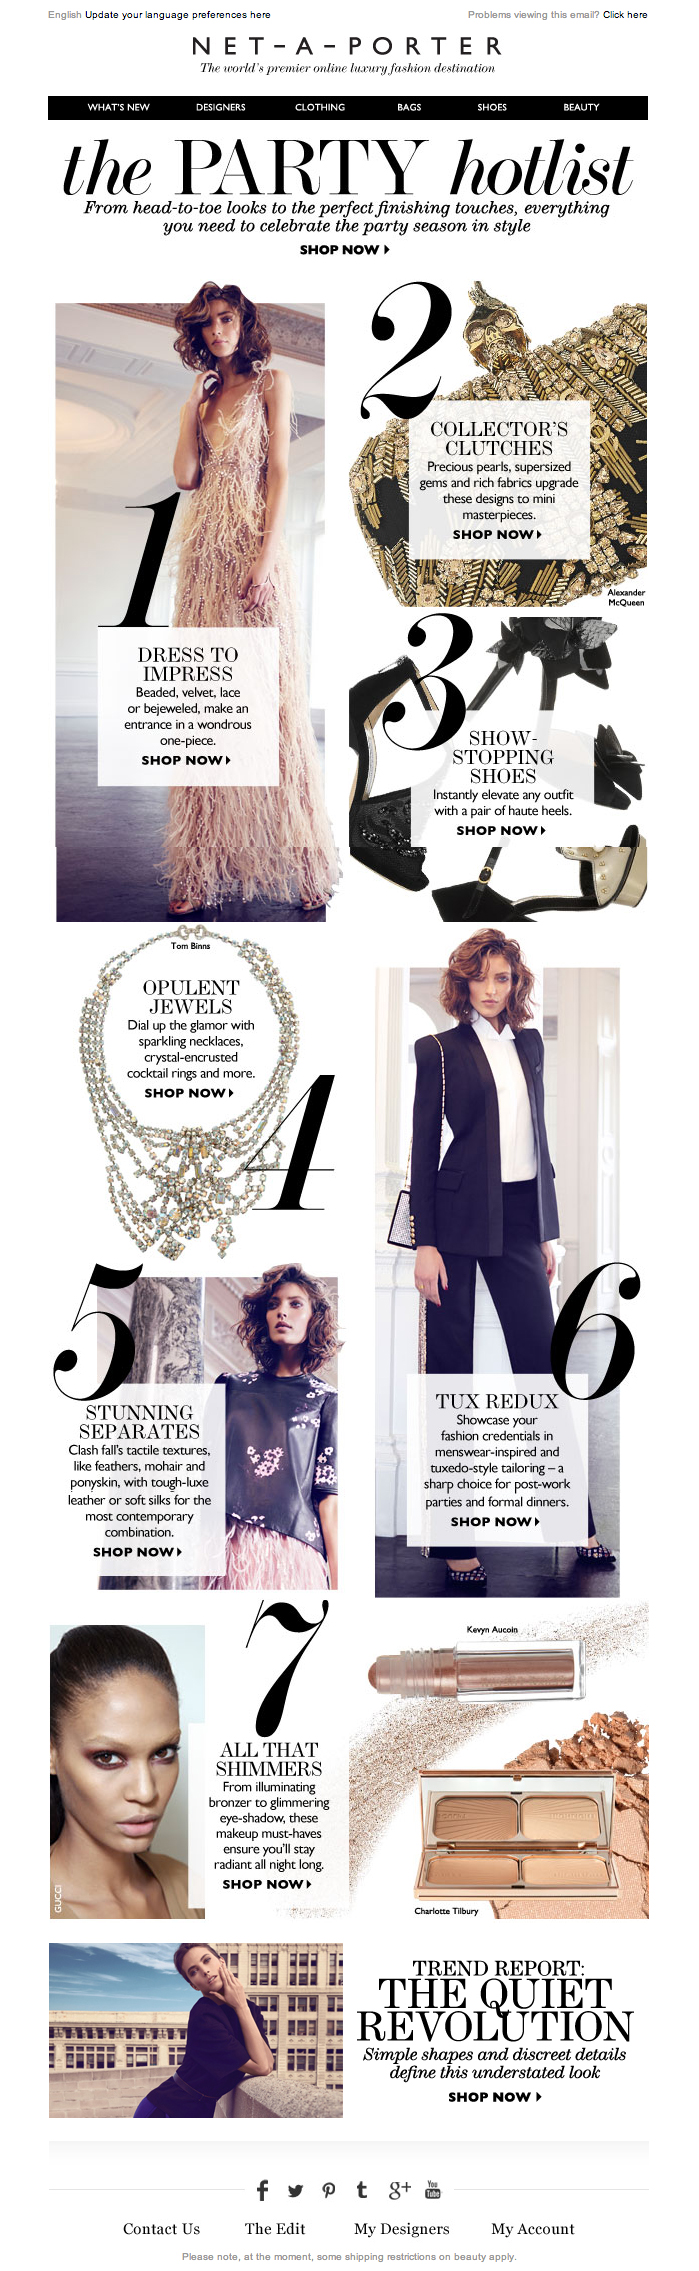 Le Meilleur Newsletter Net A Porter 11 2013 7 Steps To Perfecting Ce Mois Ci